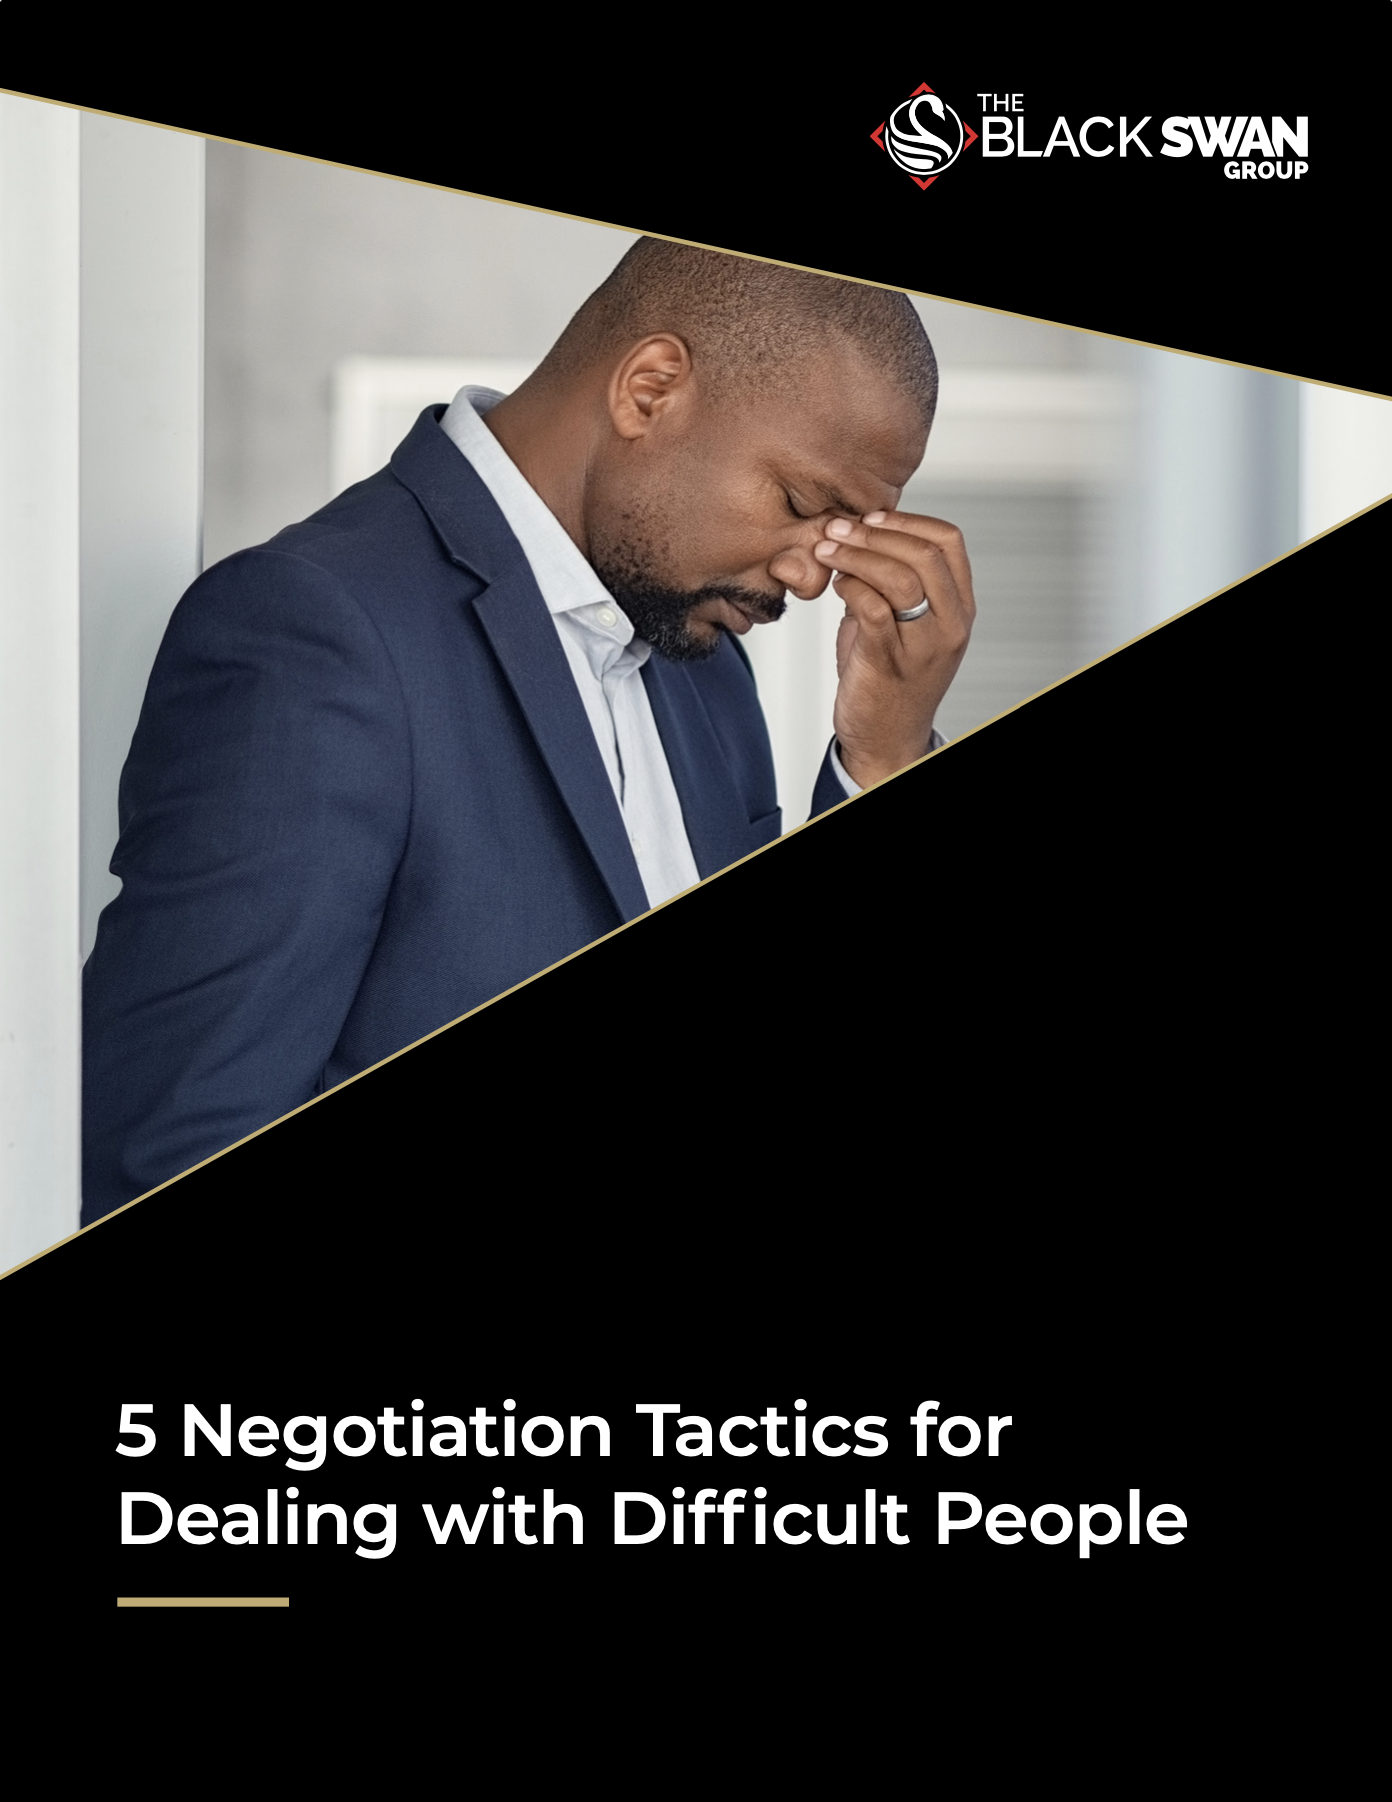 5 Negotiation Tactics for Dealing with Difficult People